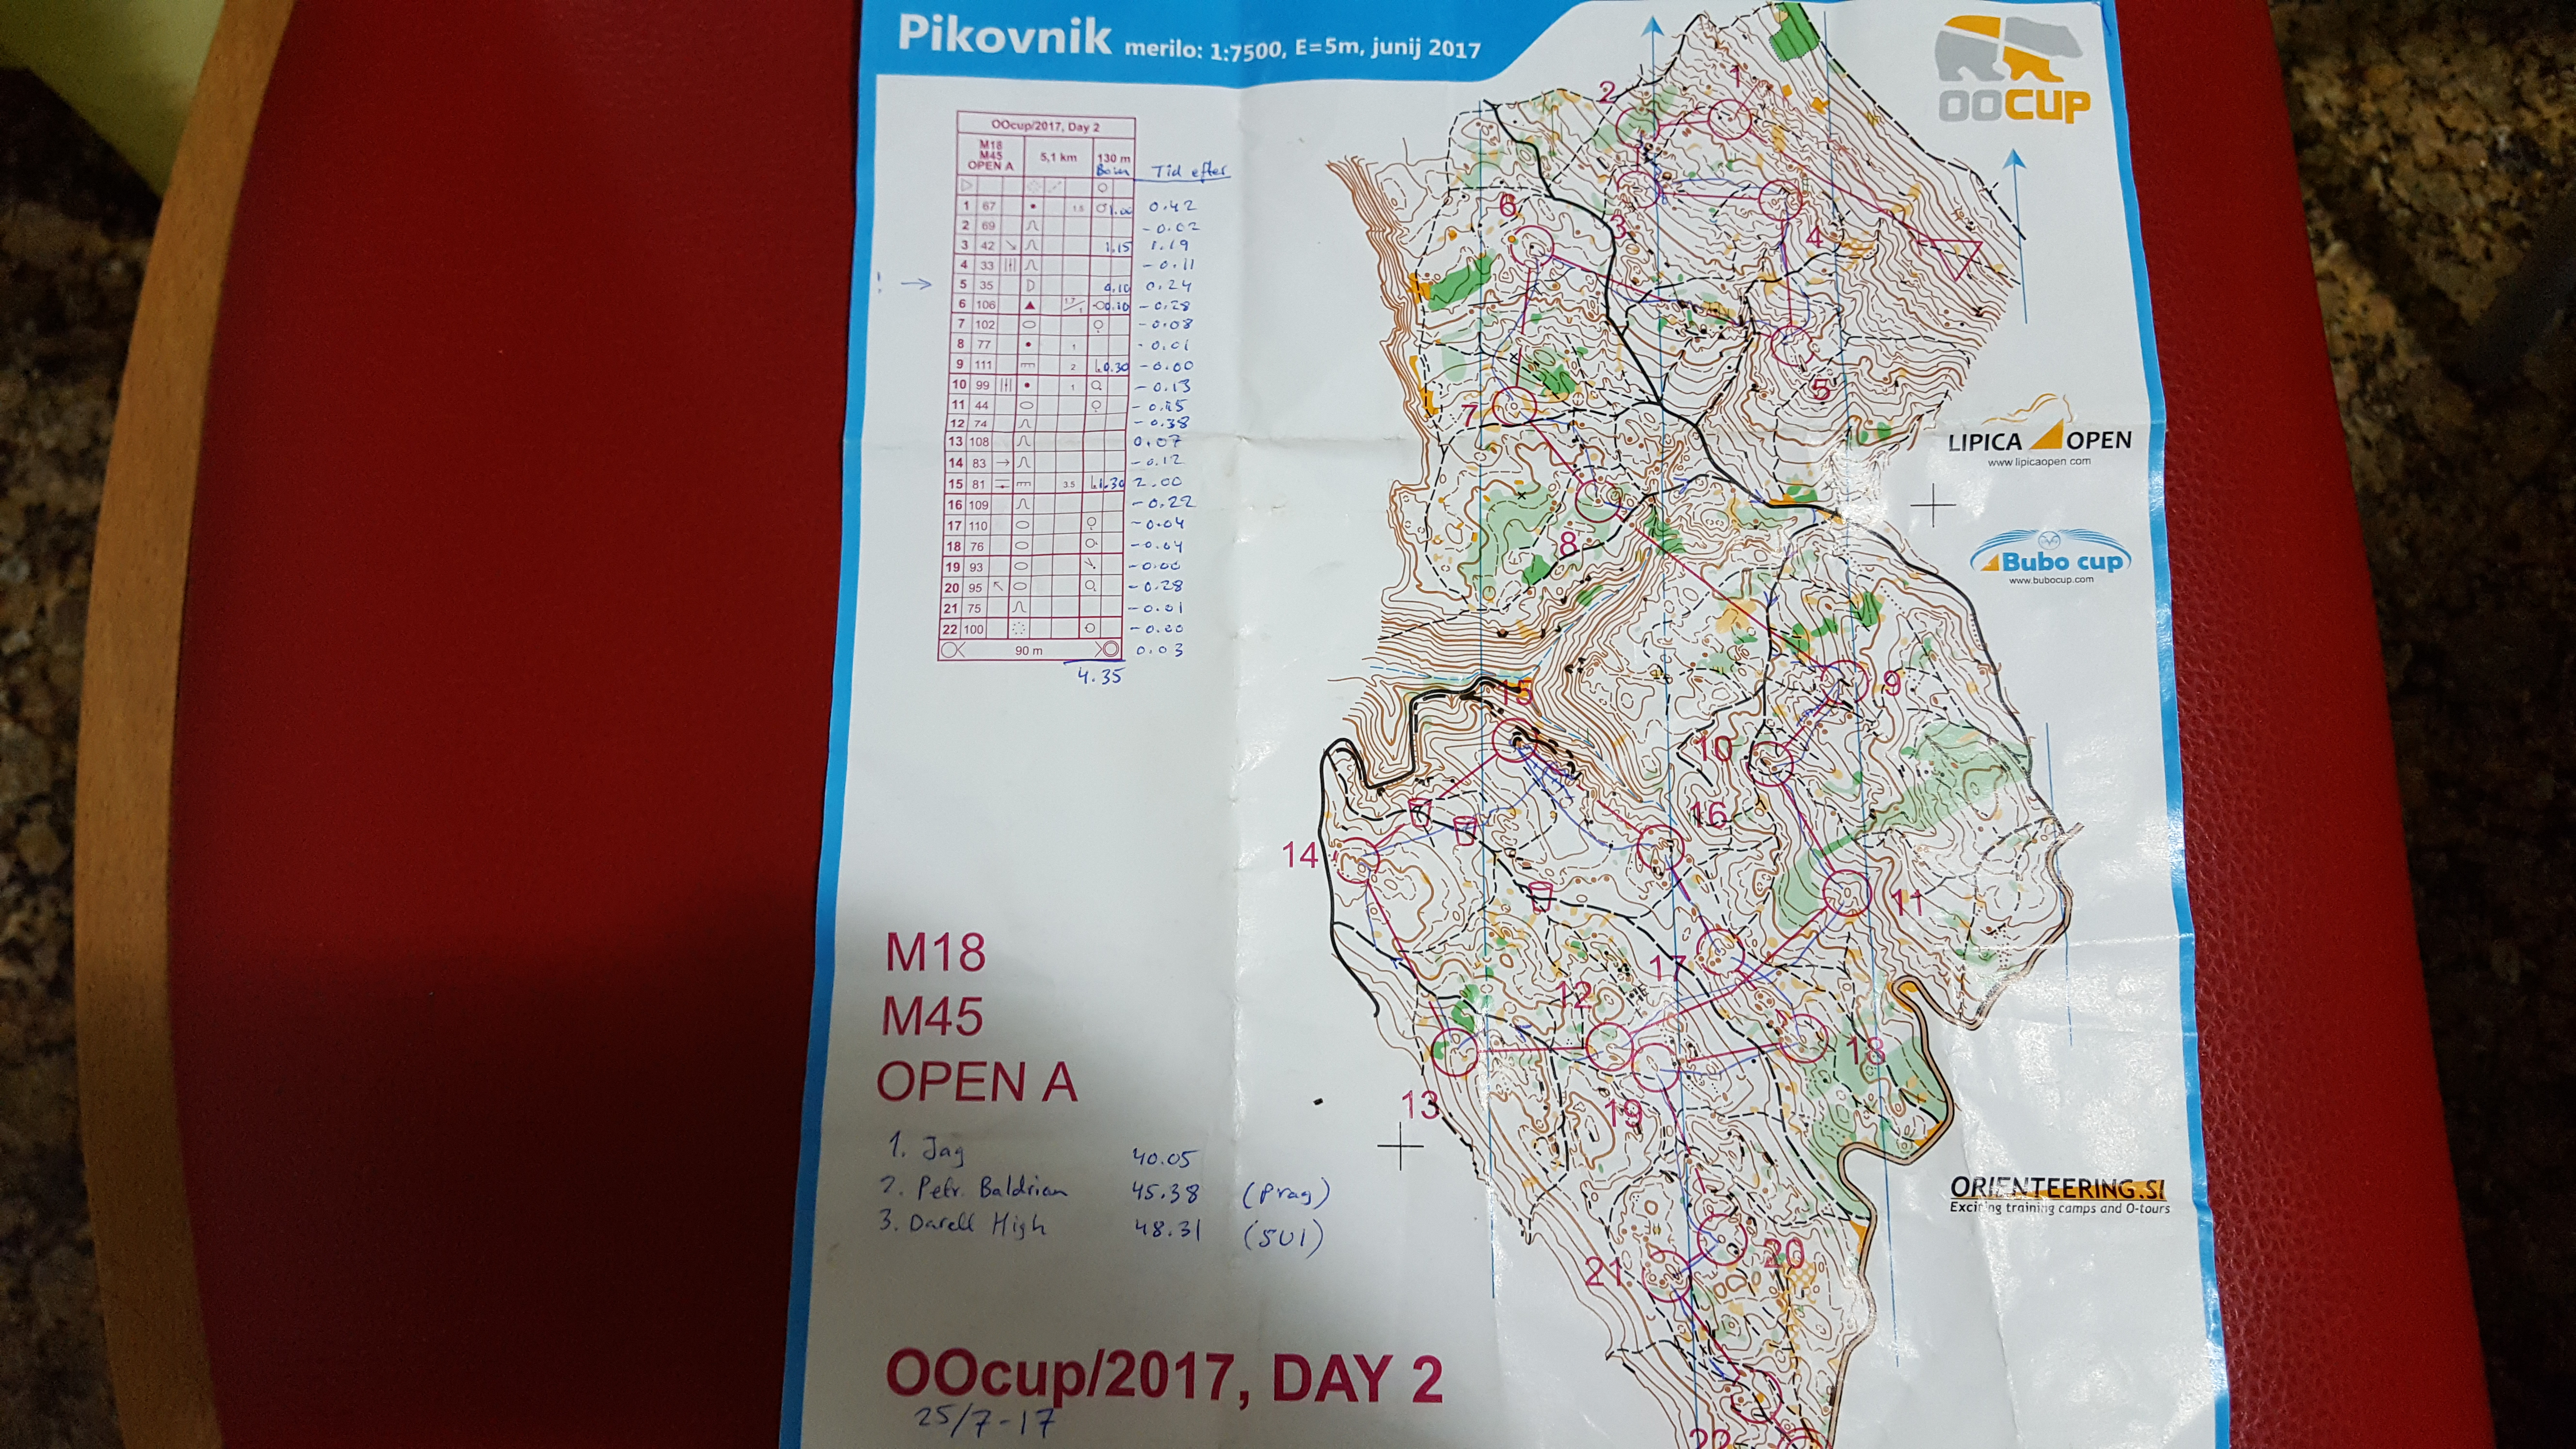 OOCUP stage2 (2017-07-25)